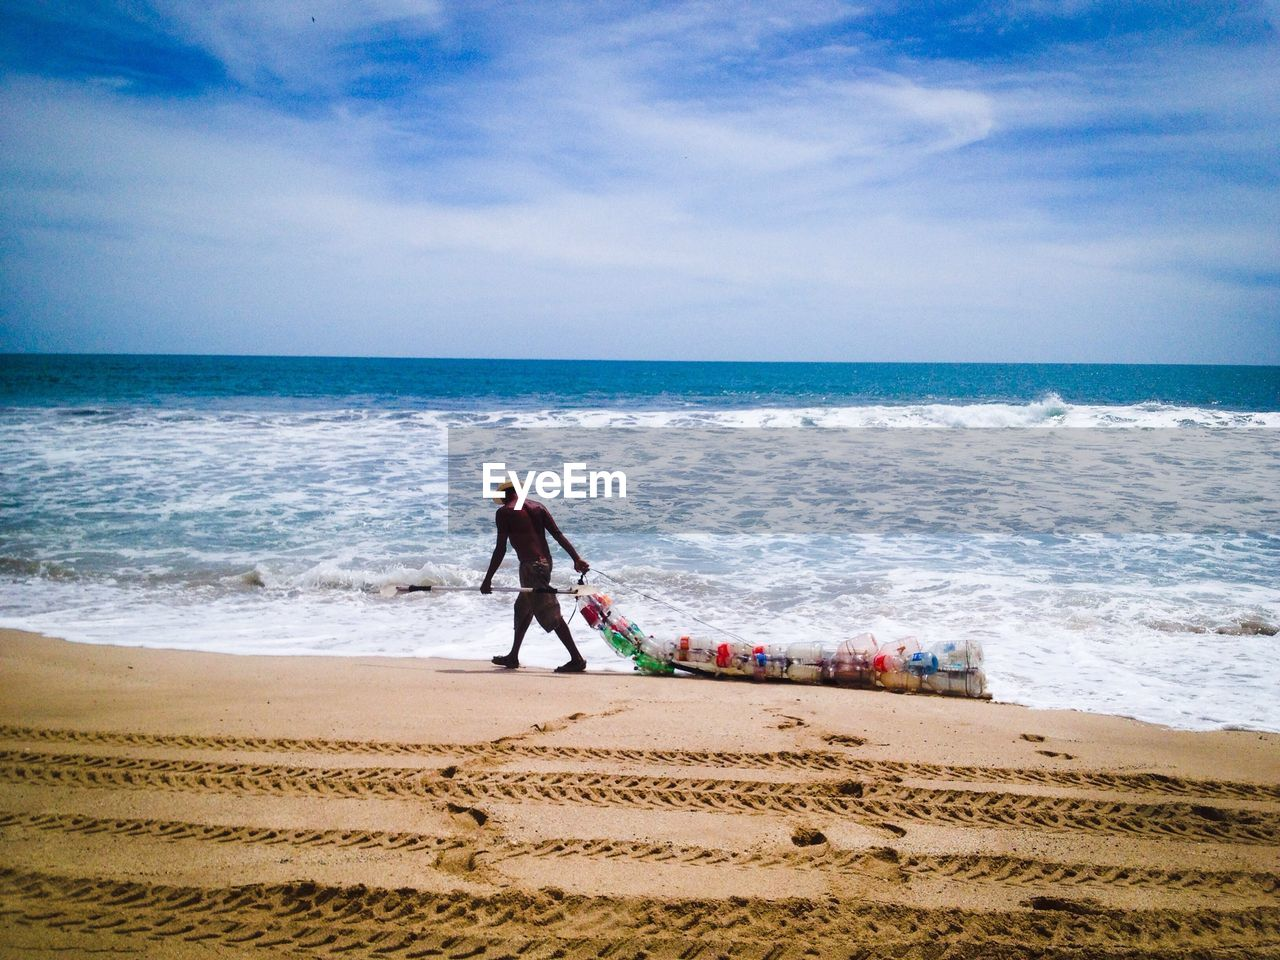 sea, beach, horizon over water, sand, sky, water, shore, nature, one person, real people, day, full length, wave, scenics, walking, beauty in nature, outdoors, standing, leisure activity, vacations, men, people